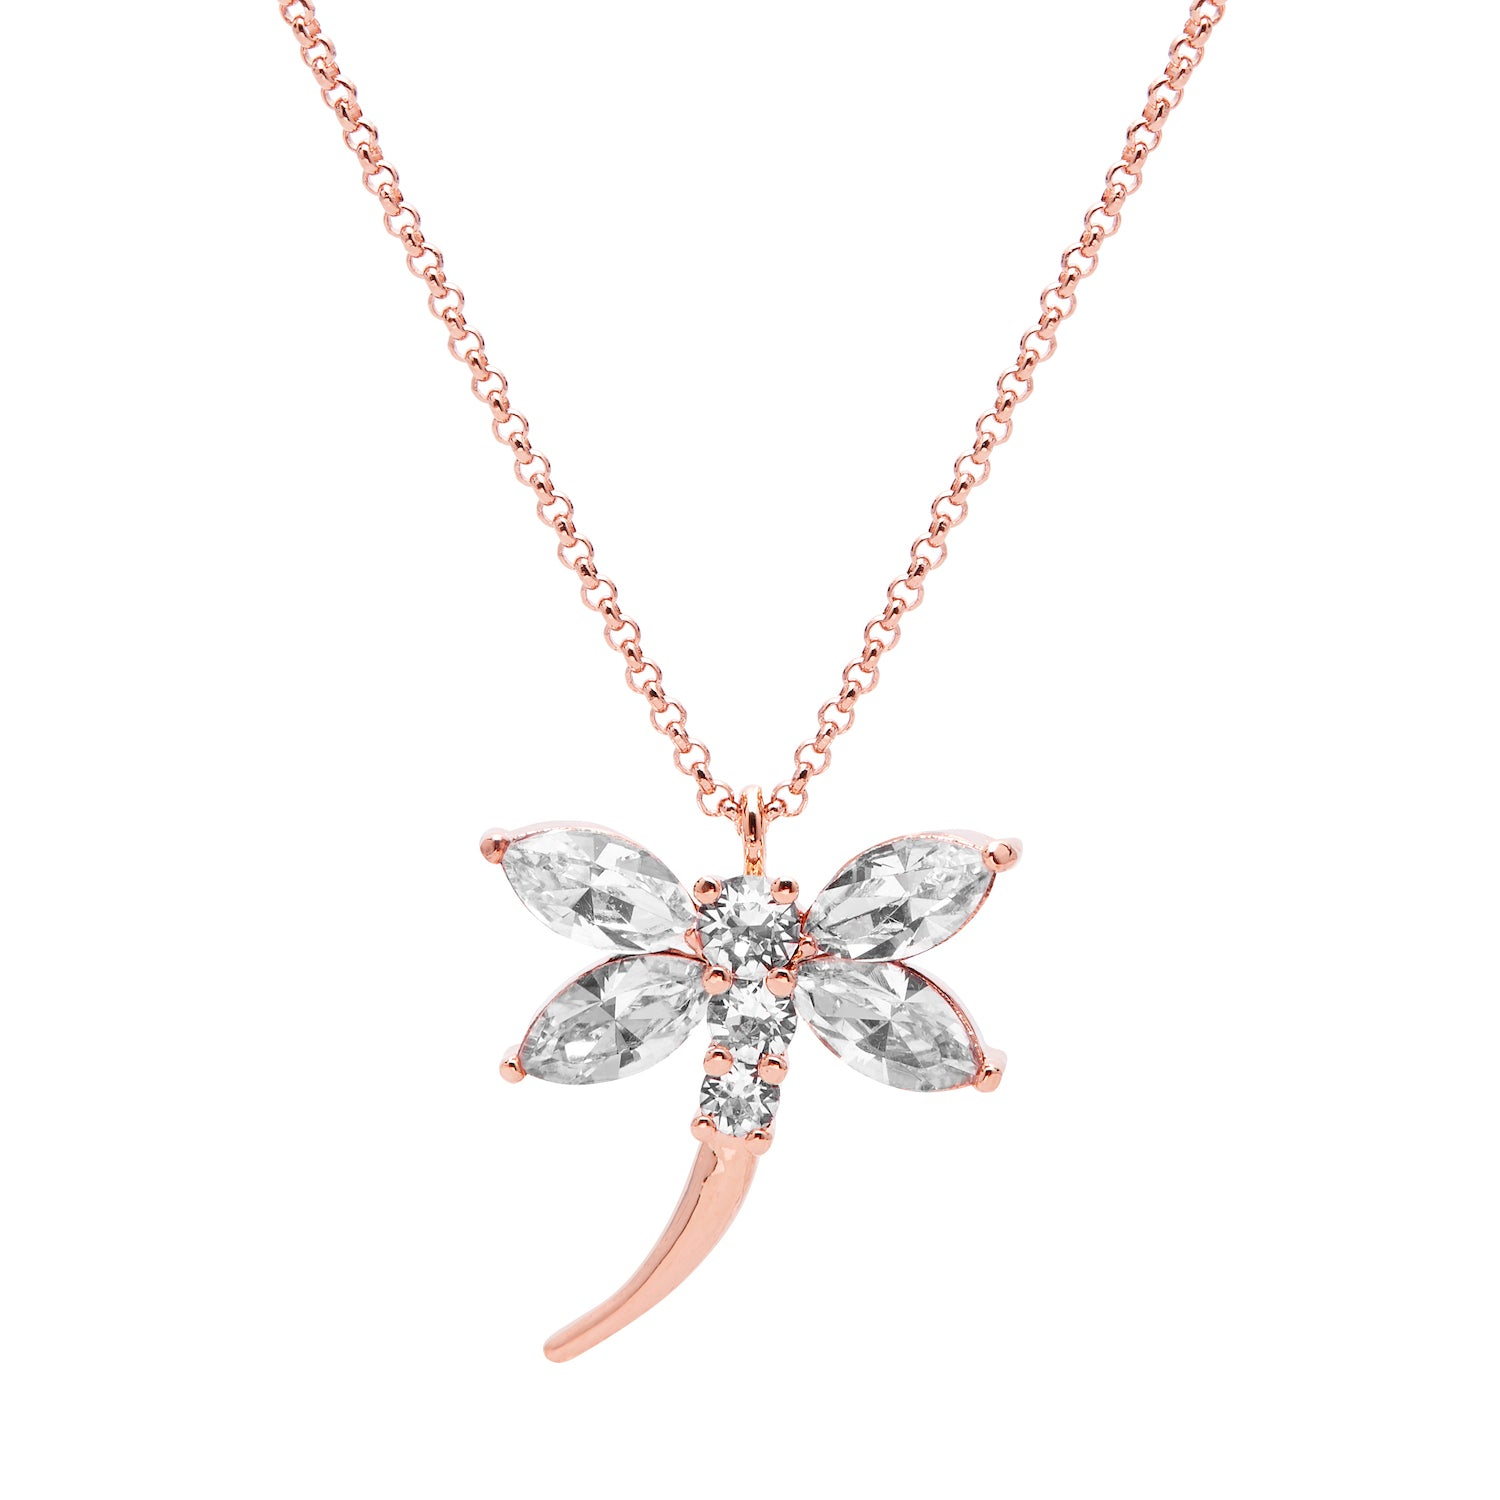 "Aura ""Dragonfly"" 18k Rose Gold Plated Swarovski Crystal Pendant Necklace, 19.5"" with 2"" extender - Harpson Accessories"